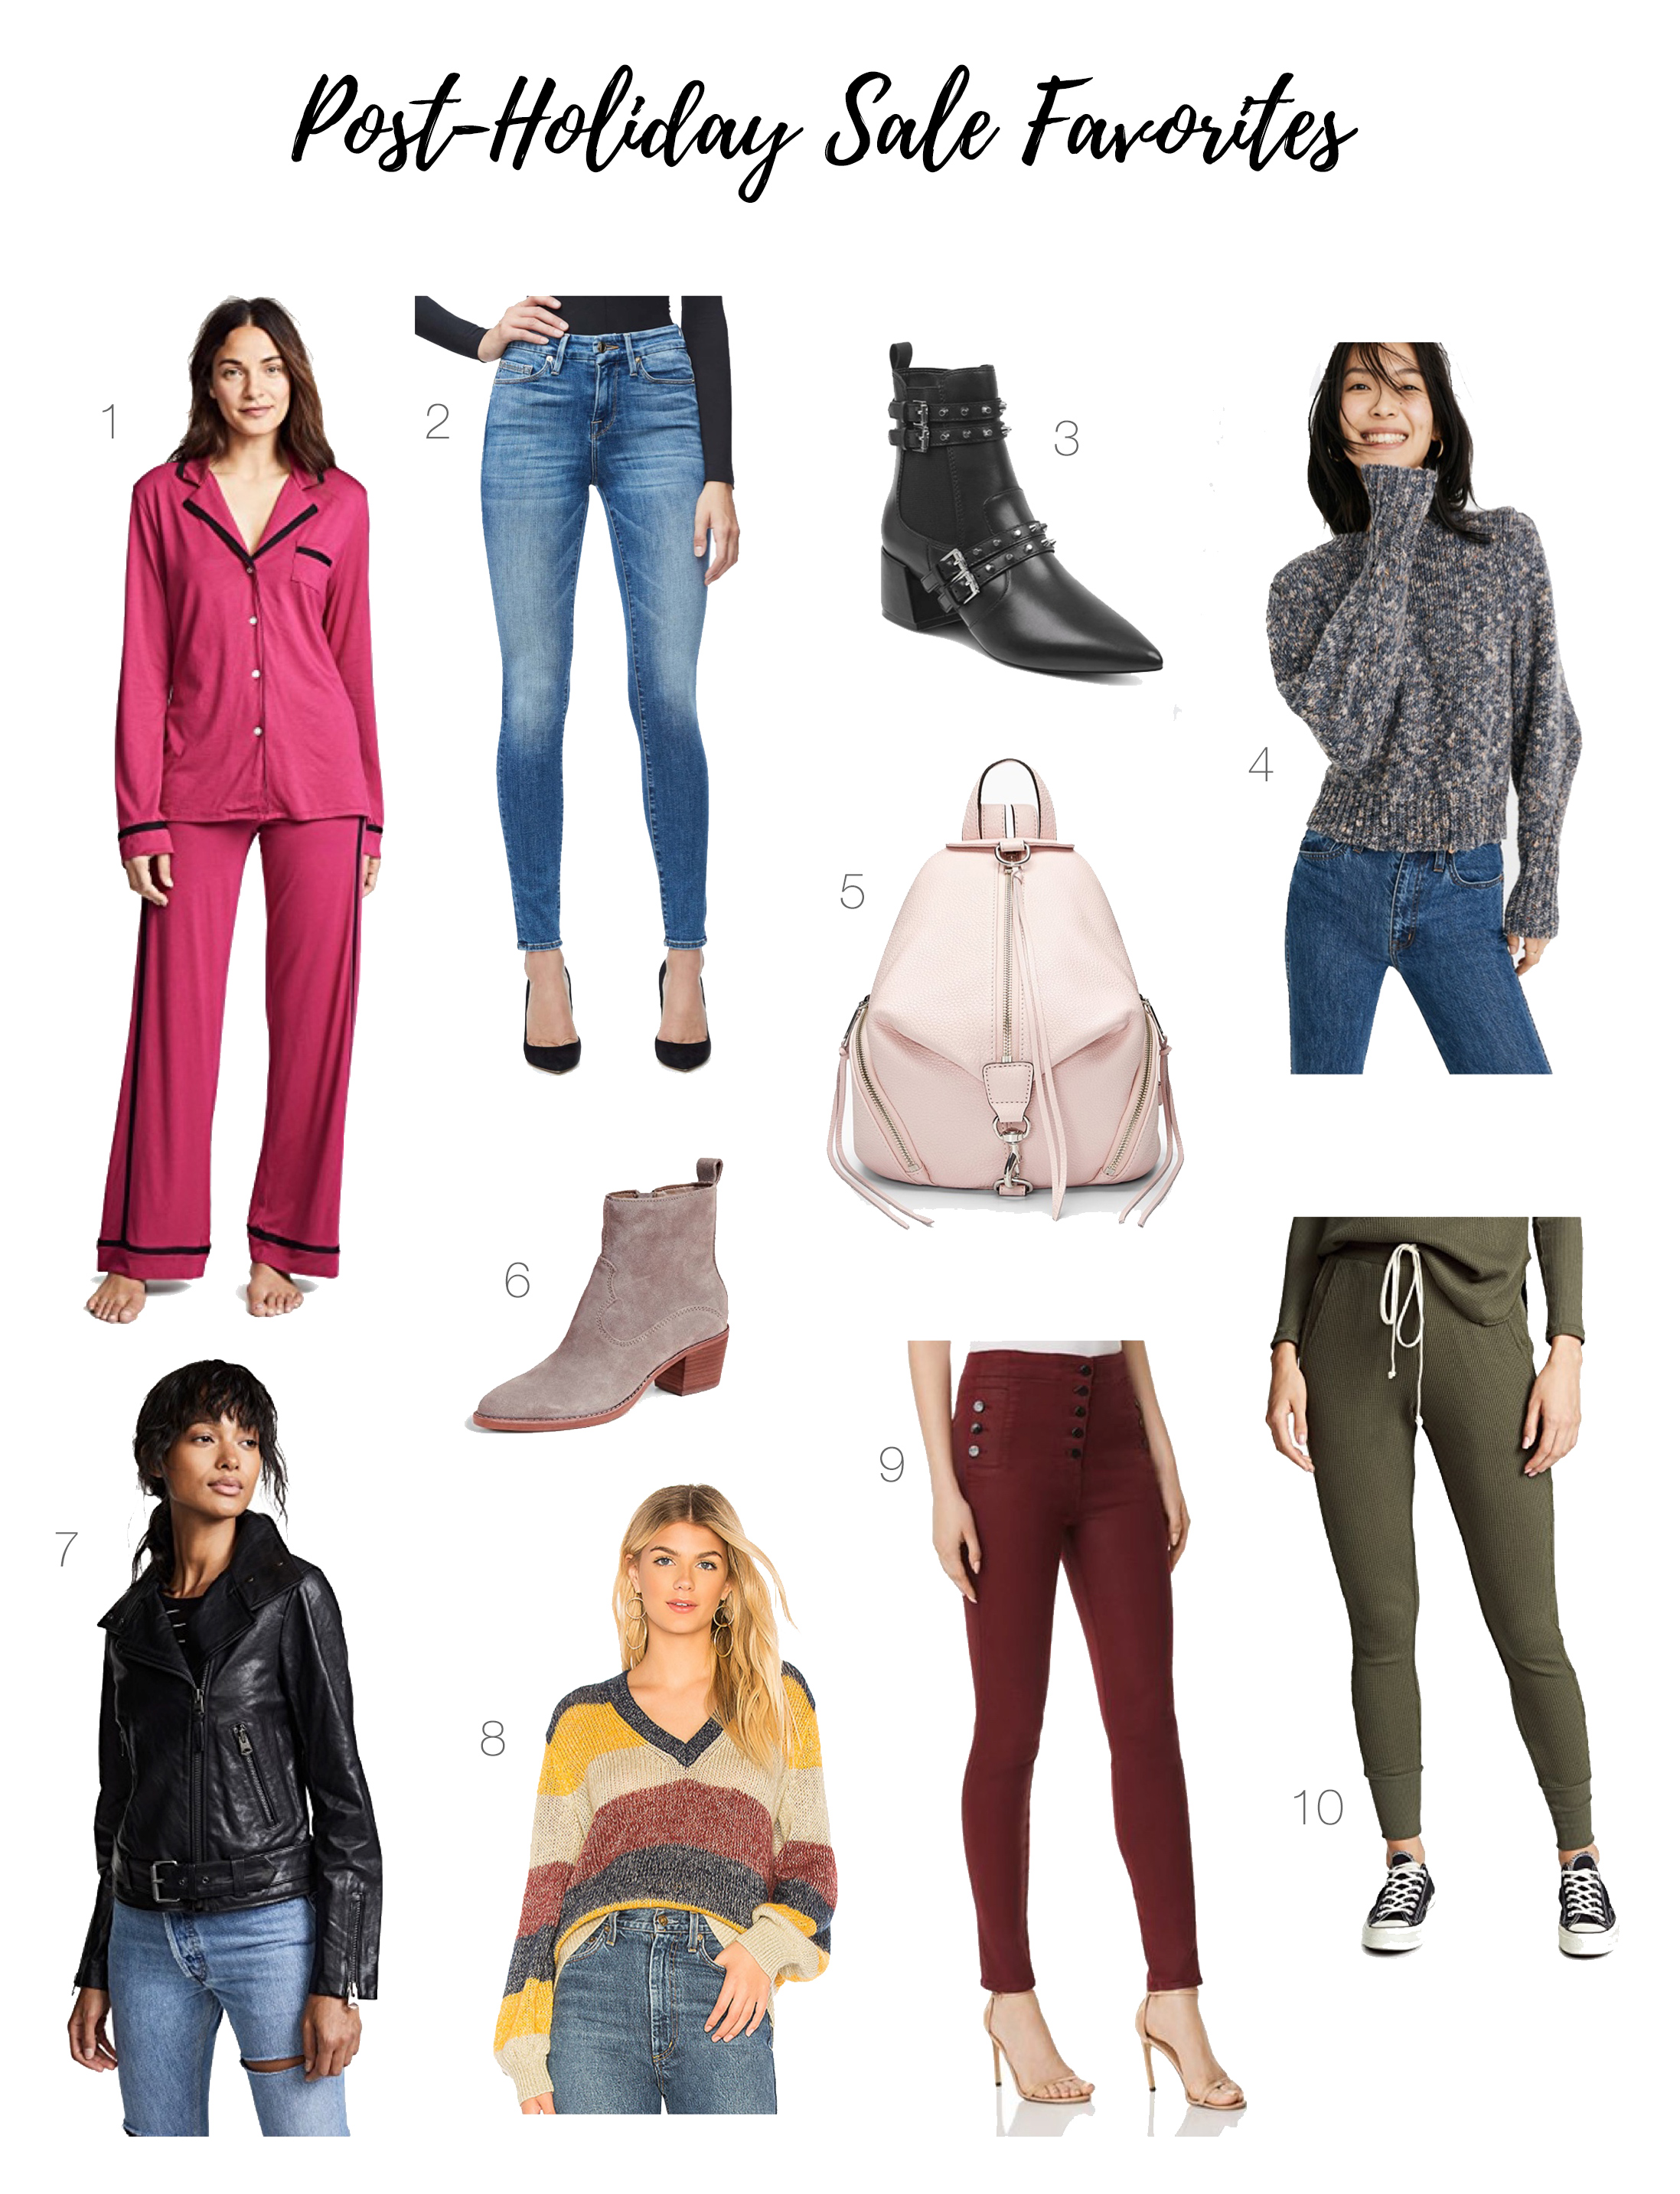 Cute booties, real leather jackets, cozy sweaters & pajama sets —yassss! These post-holiday & after-Christmas sales are delivering — check out our favs!